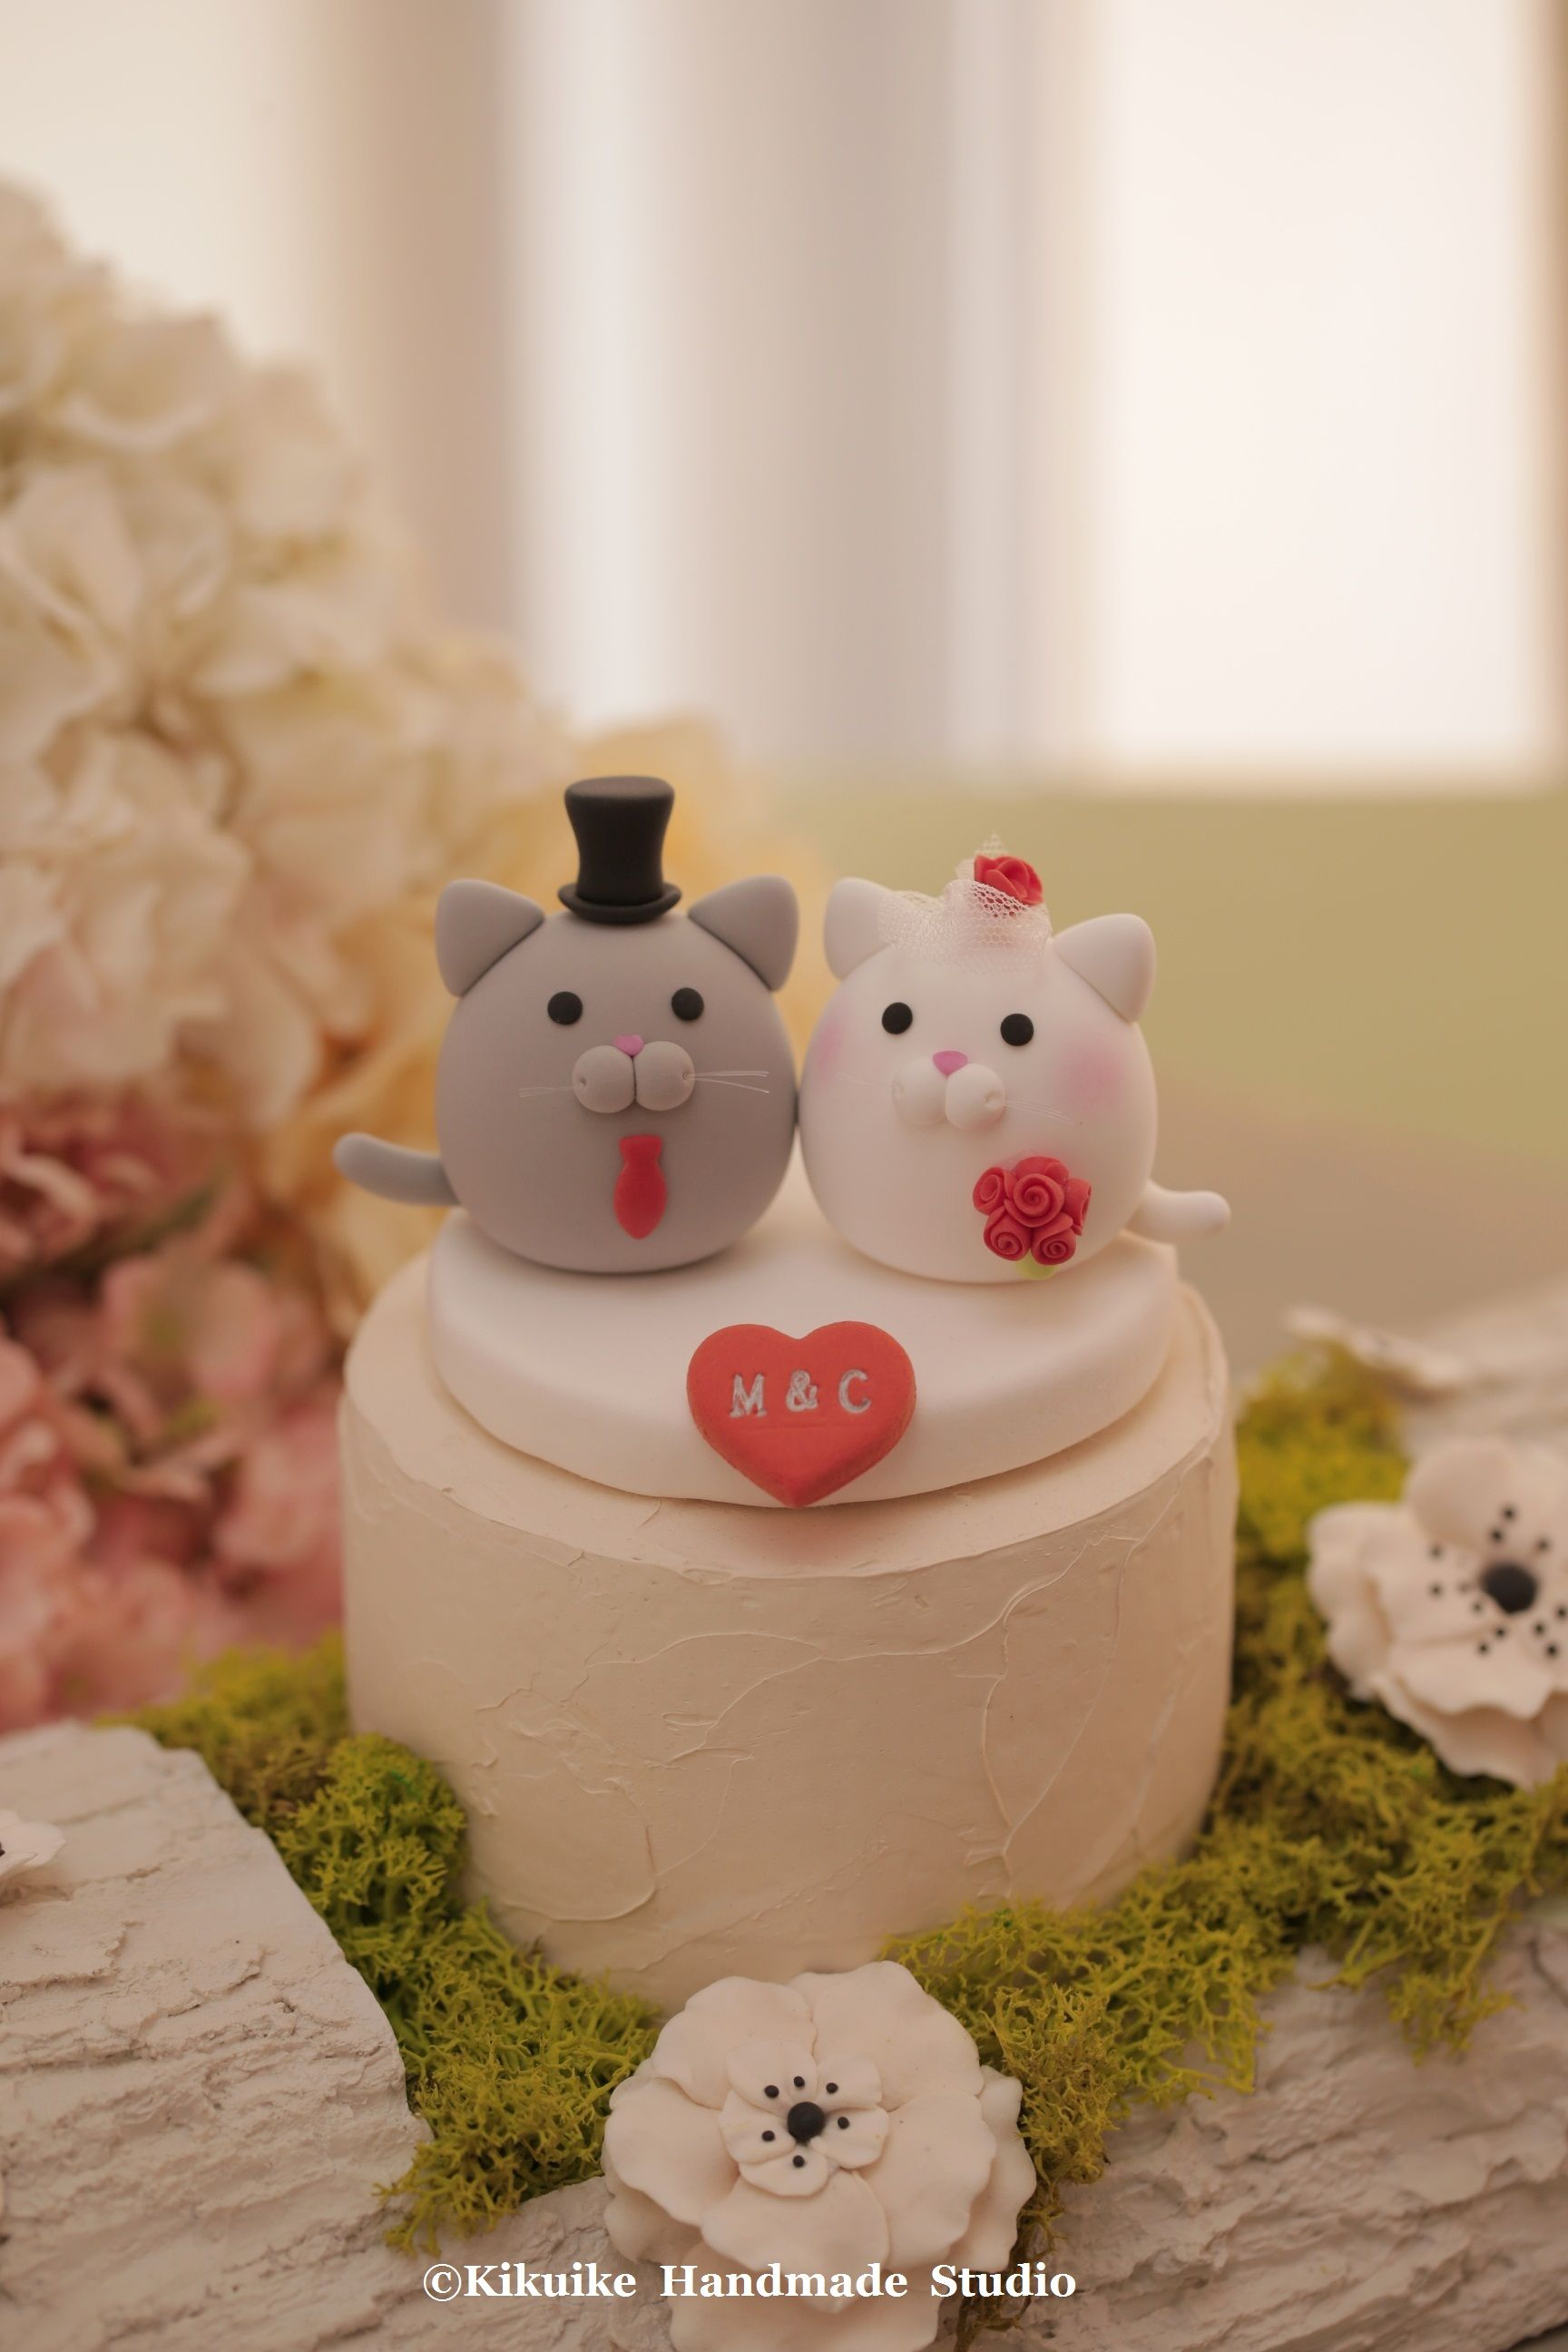 kitty and Cat wedding cake topper Wedding cake toppers